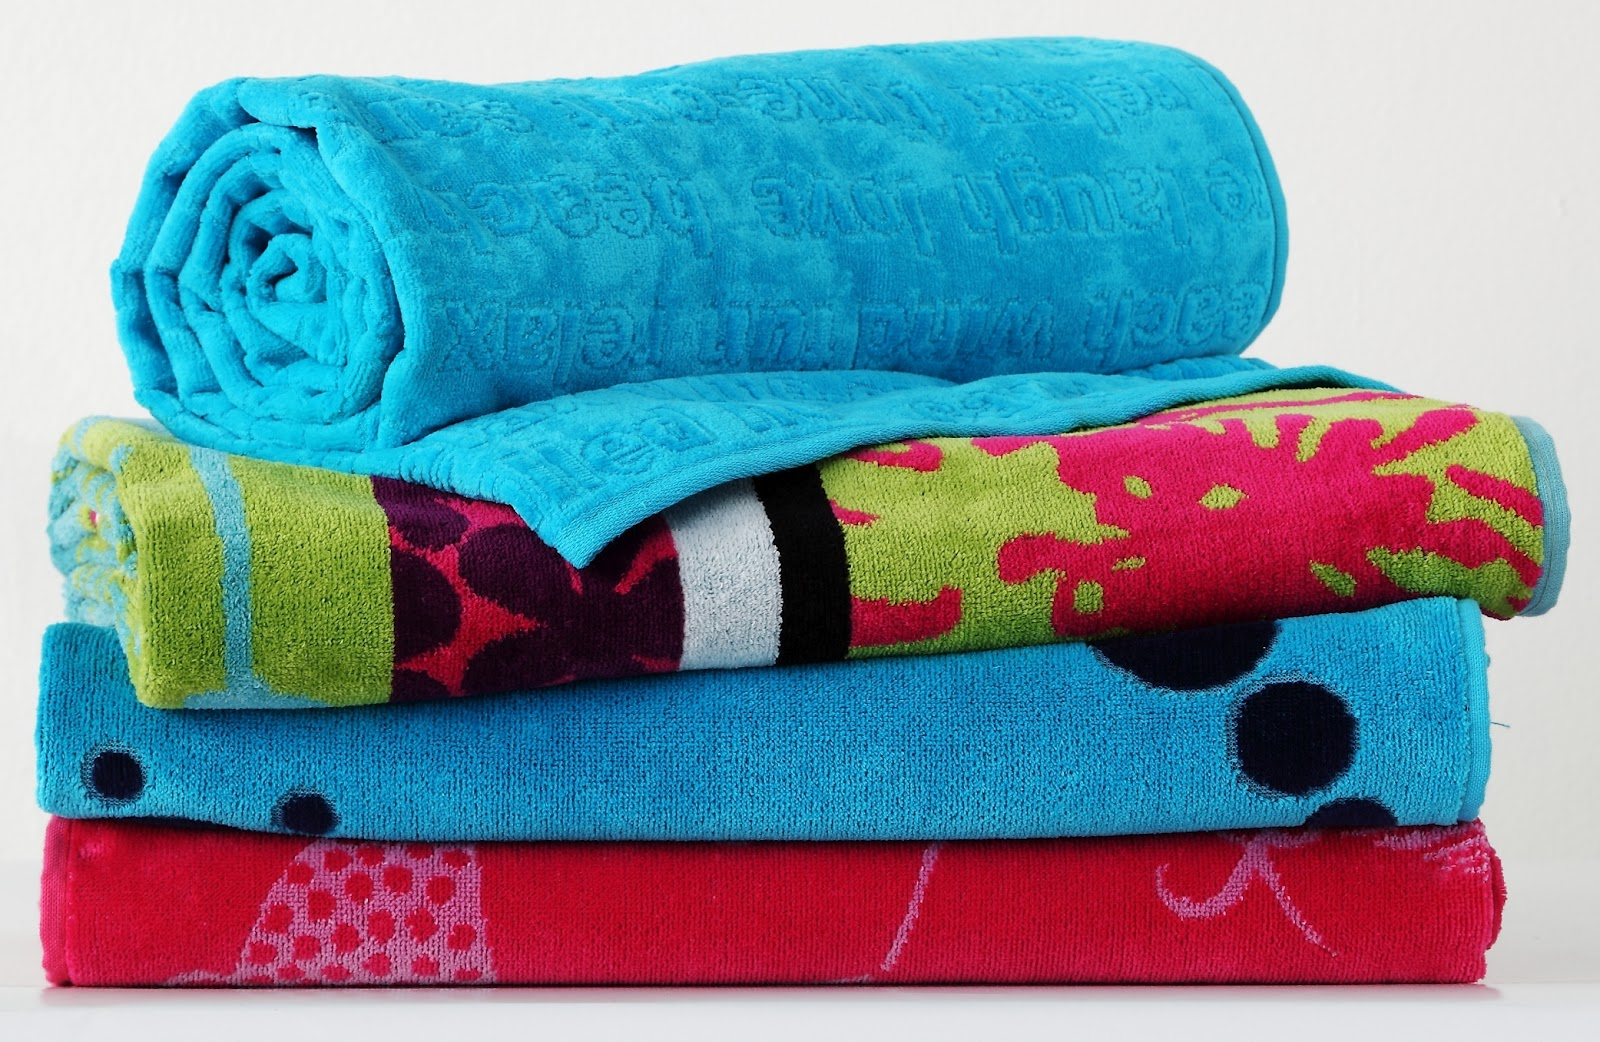 Screen Printing Or Embroidery For Personalized Beach Towels